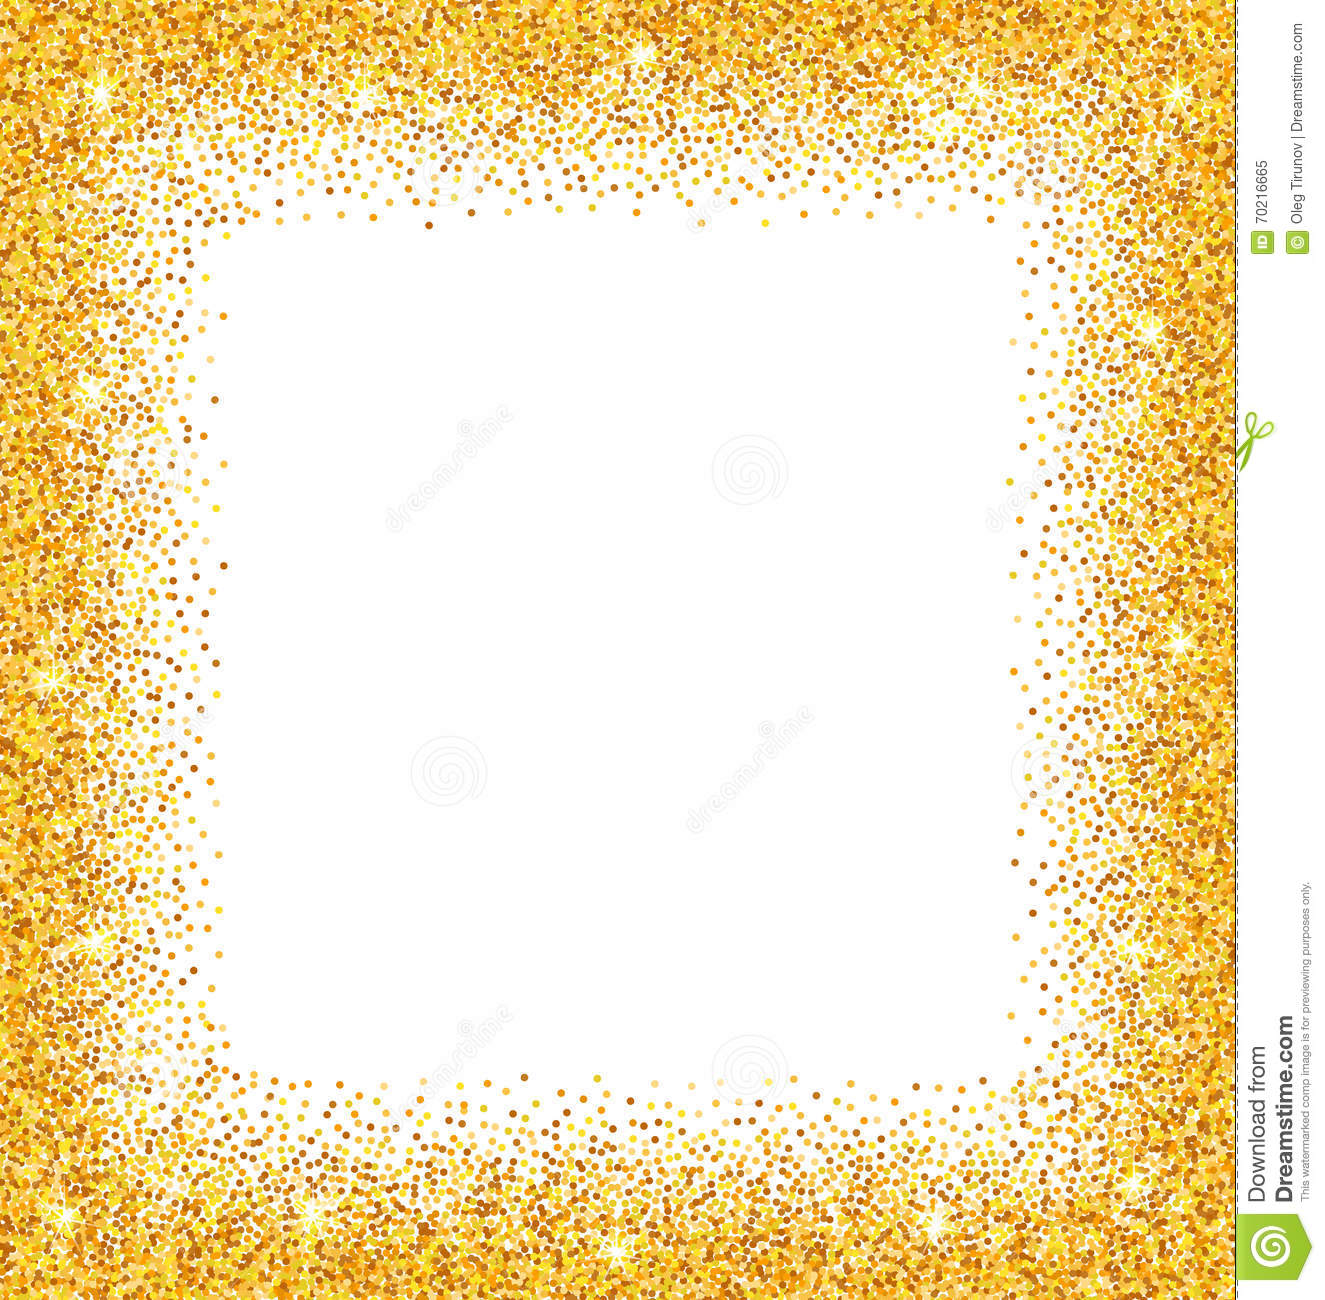 Gold glitter bright vector transparent background golden sparkles - Abstract Golden Frame With Sparkles On White Background